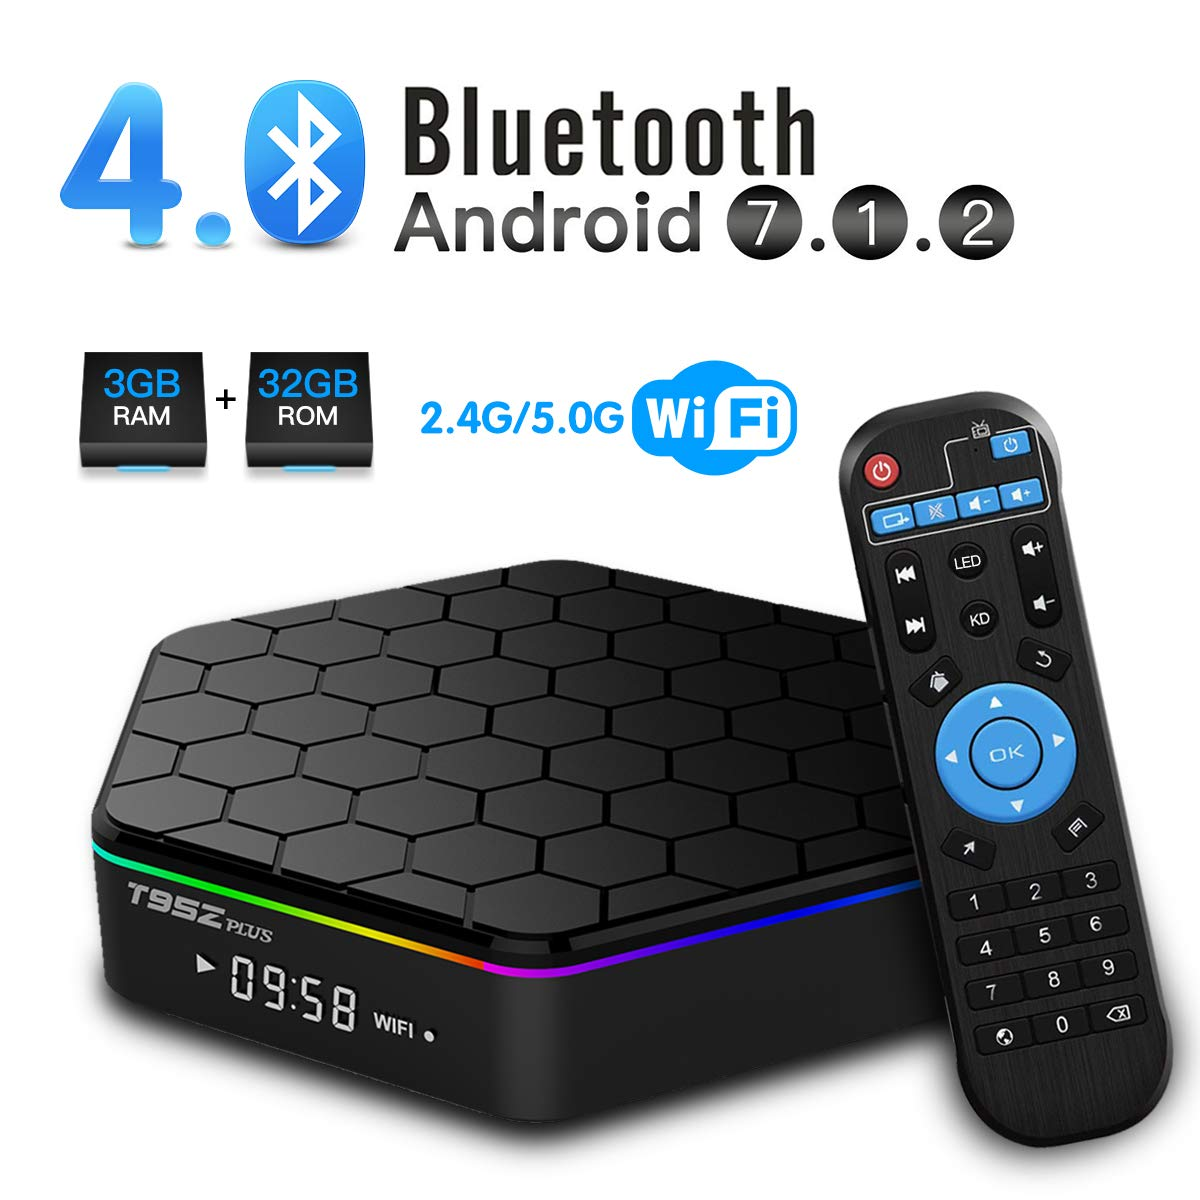 T95Z Plus Android TV Box 3GB RAM 32GB ROM, Android 7 1 TV Box Amlogic S912  Octa Core Dual 2 4/5 0 GHz WiFi Support 1000M LAN Ethernet 64Bit H 265